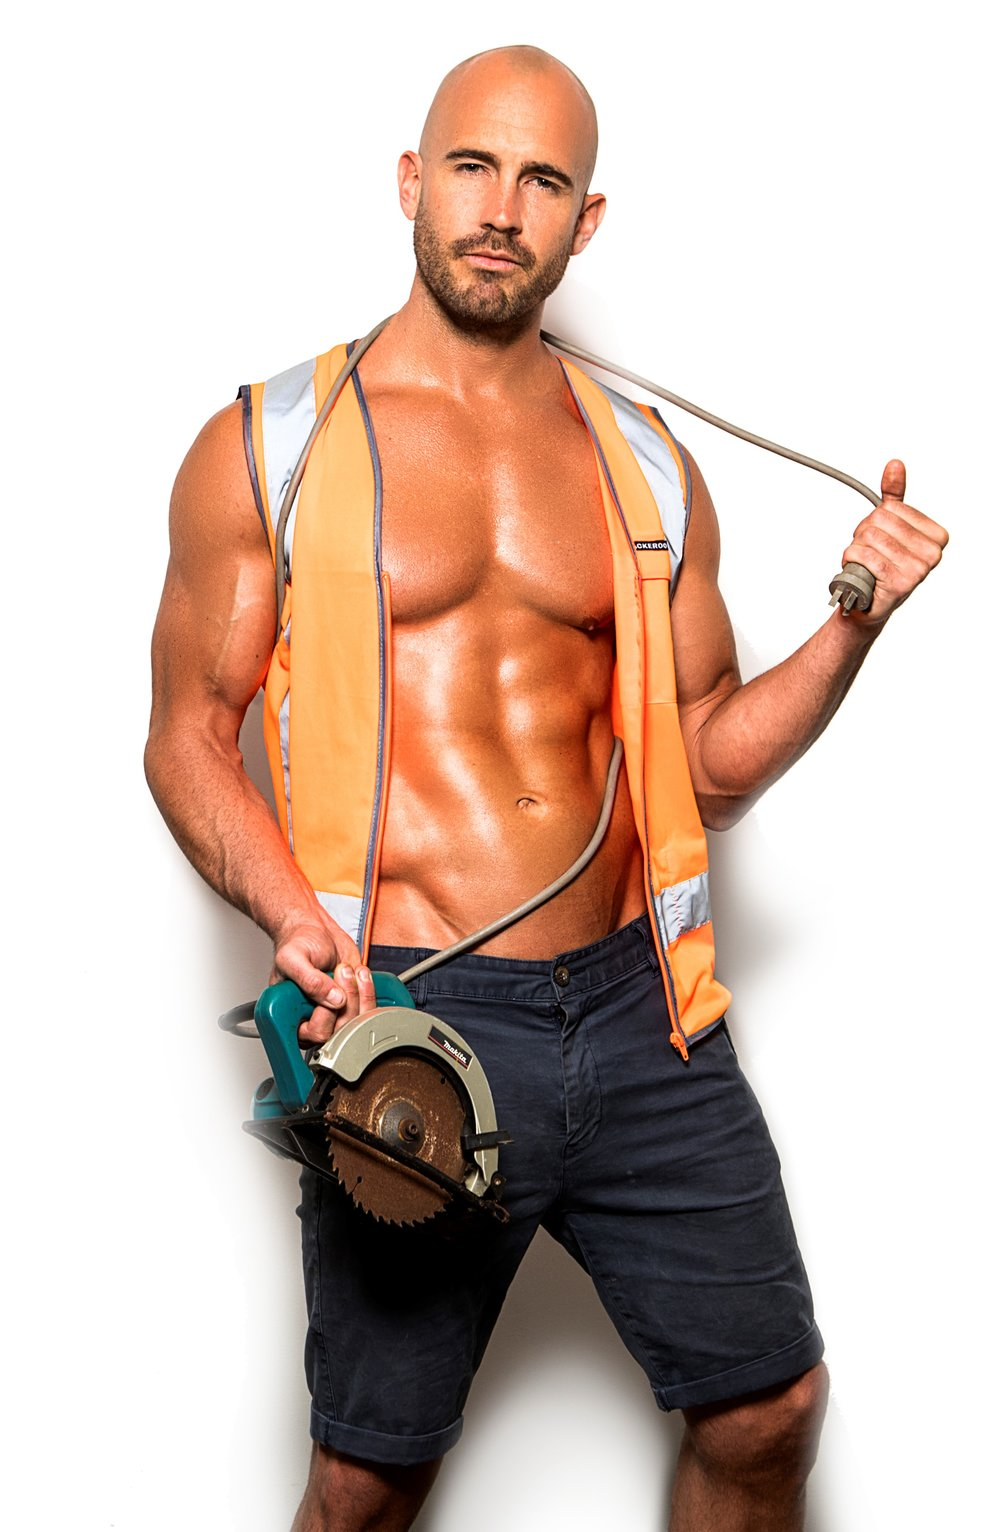 male strippers and topless hosts for hire to your house or home or hotel room in brisbane city.